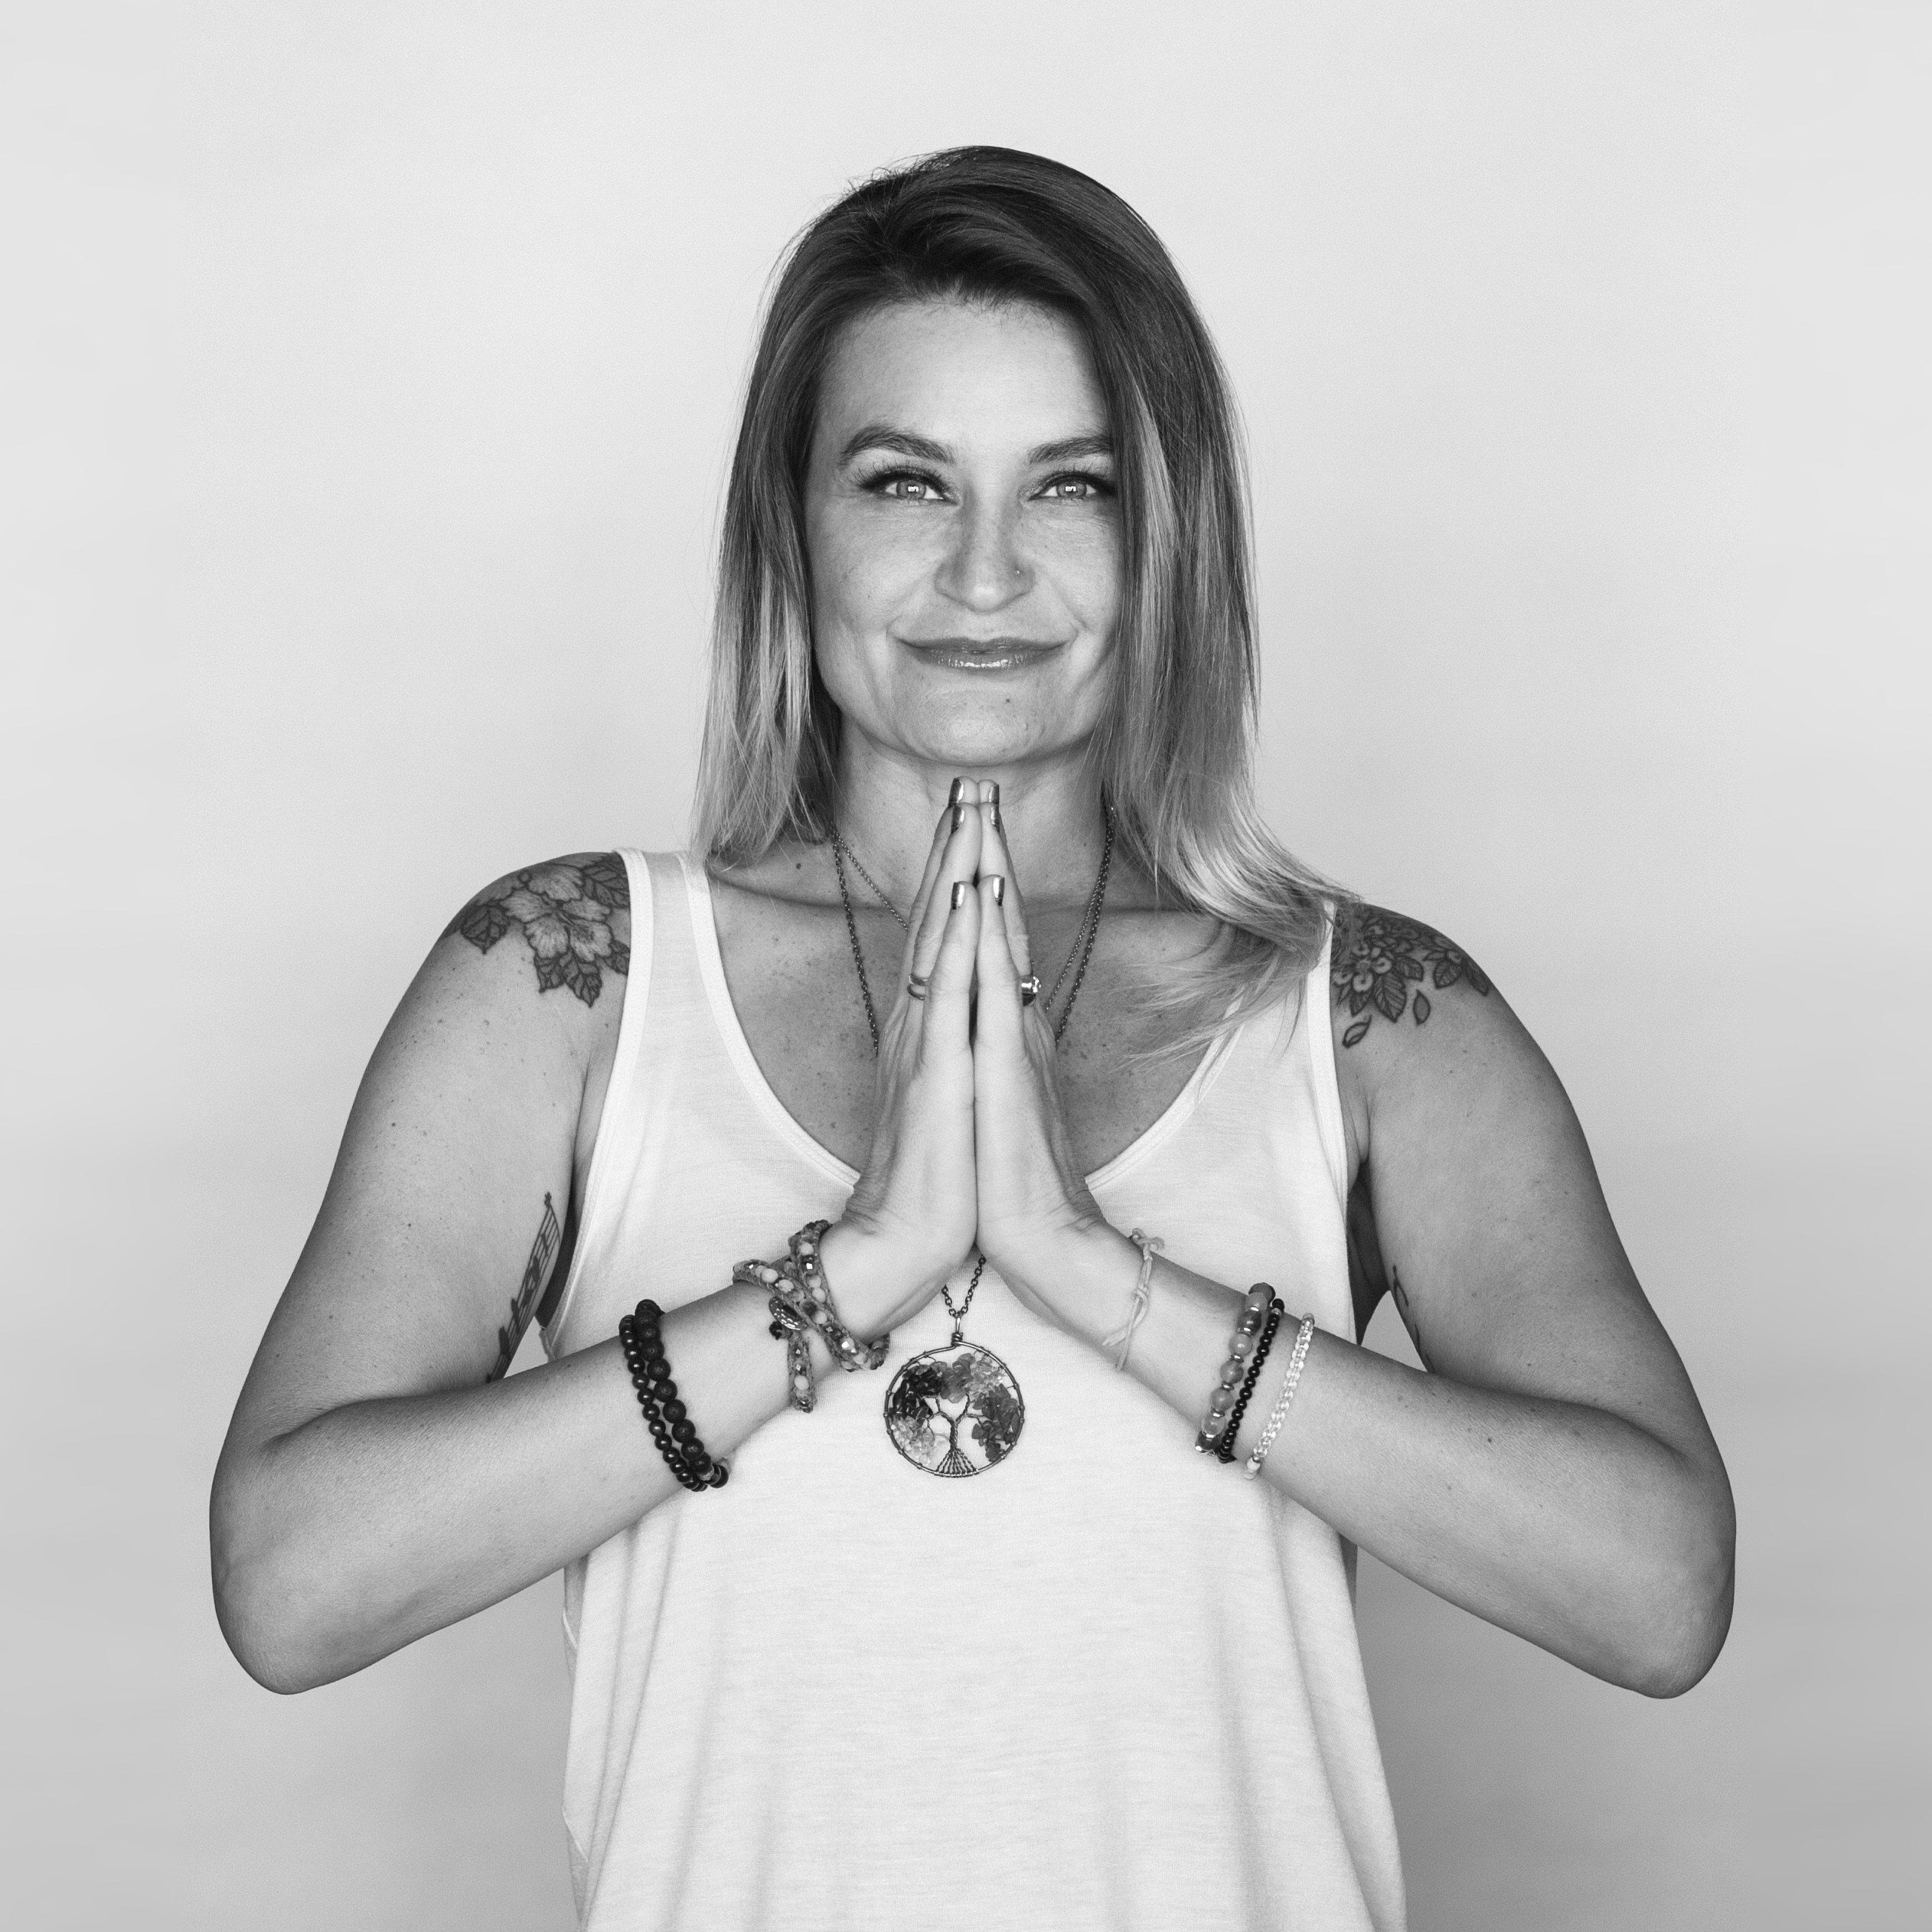 Tarah Bird, Intuitive Healer, Los Angeles | Find a Healer at HEALERSWANTED.COM